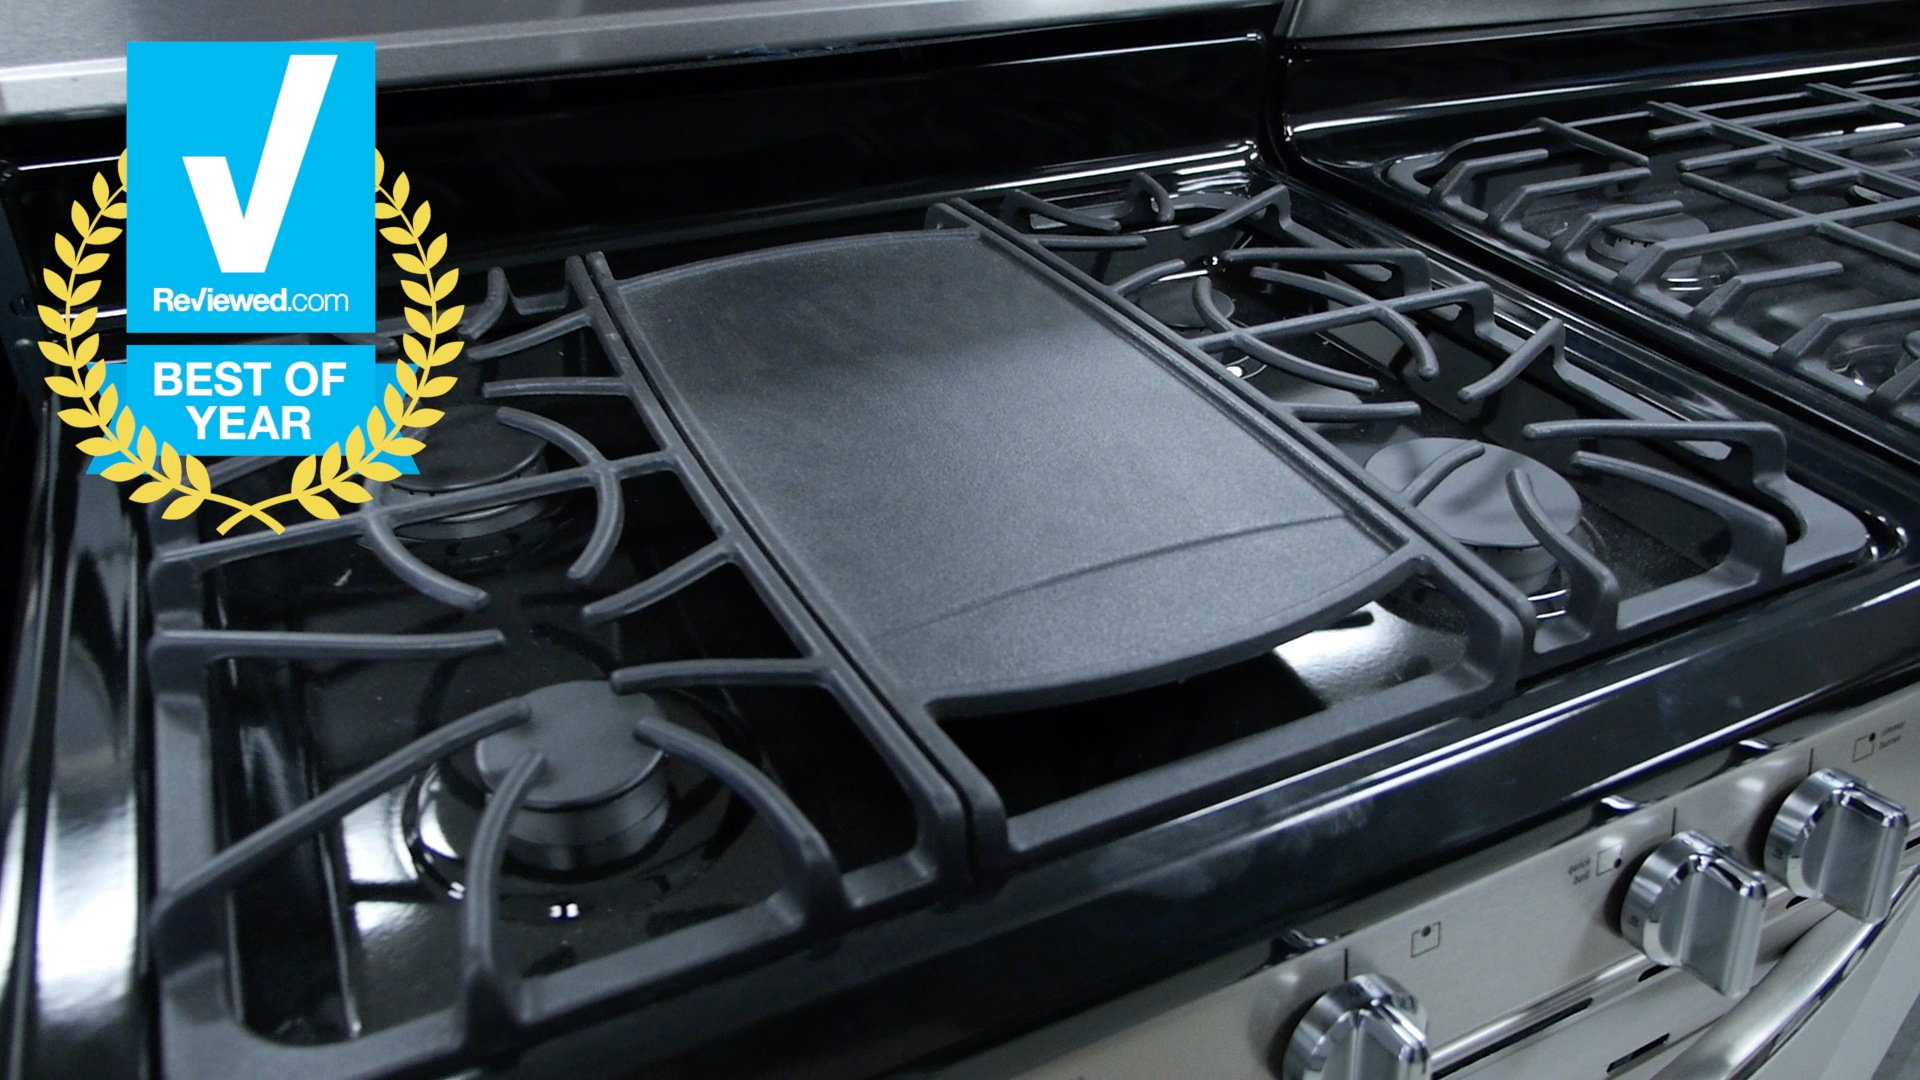 1242911077001 3900231183001 the best appliances of 2014   still